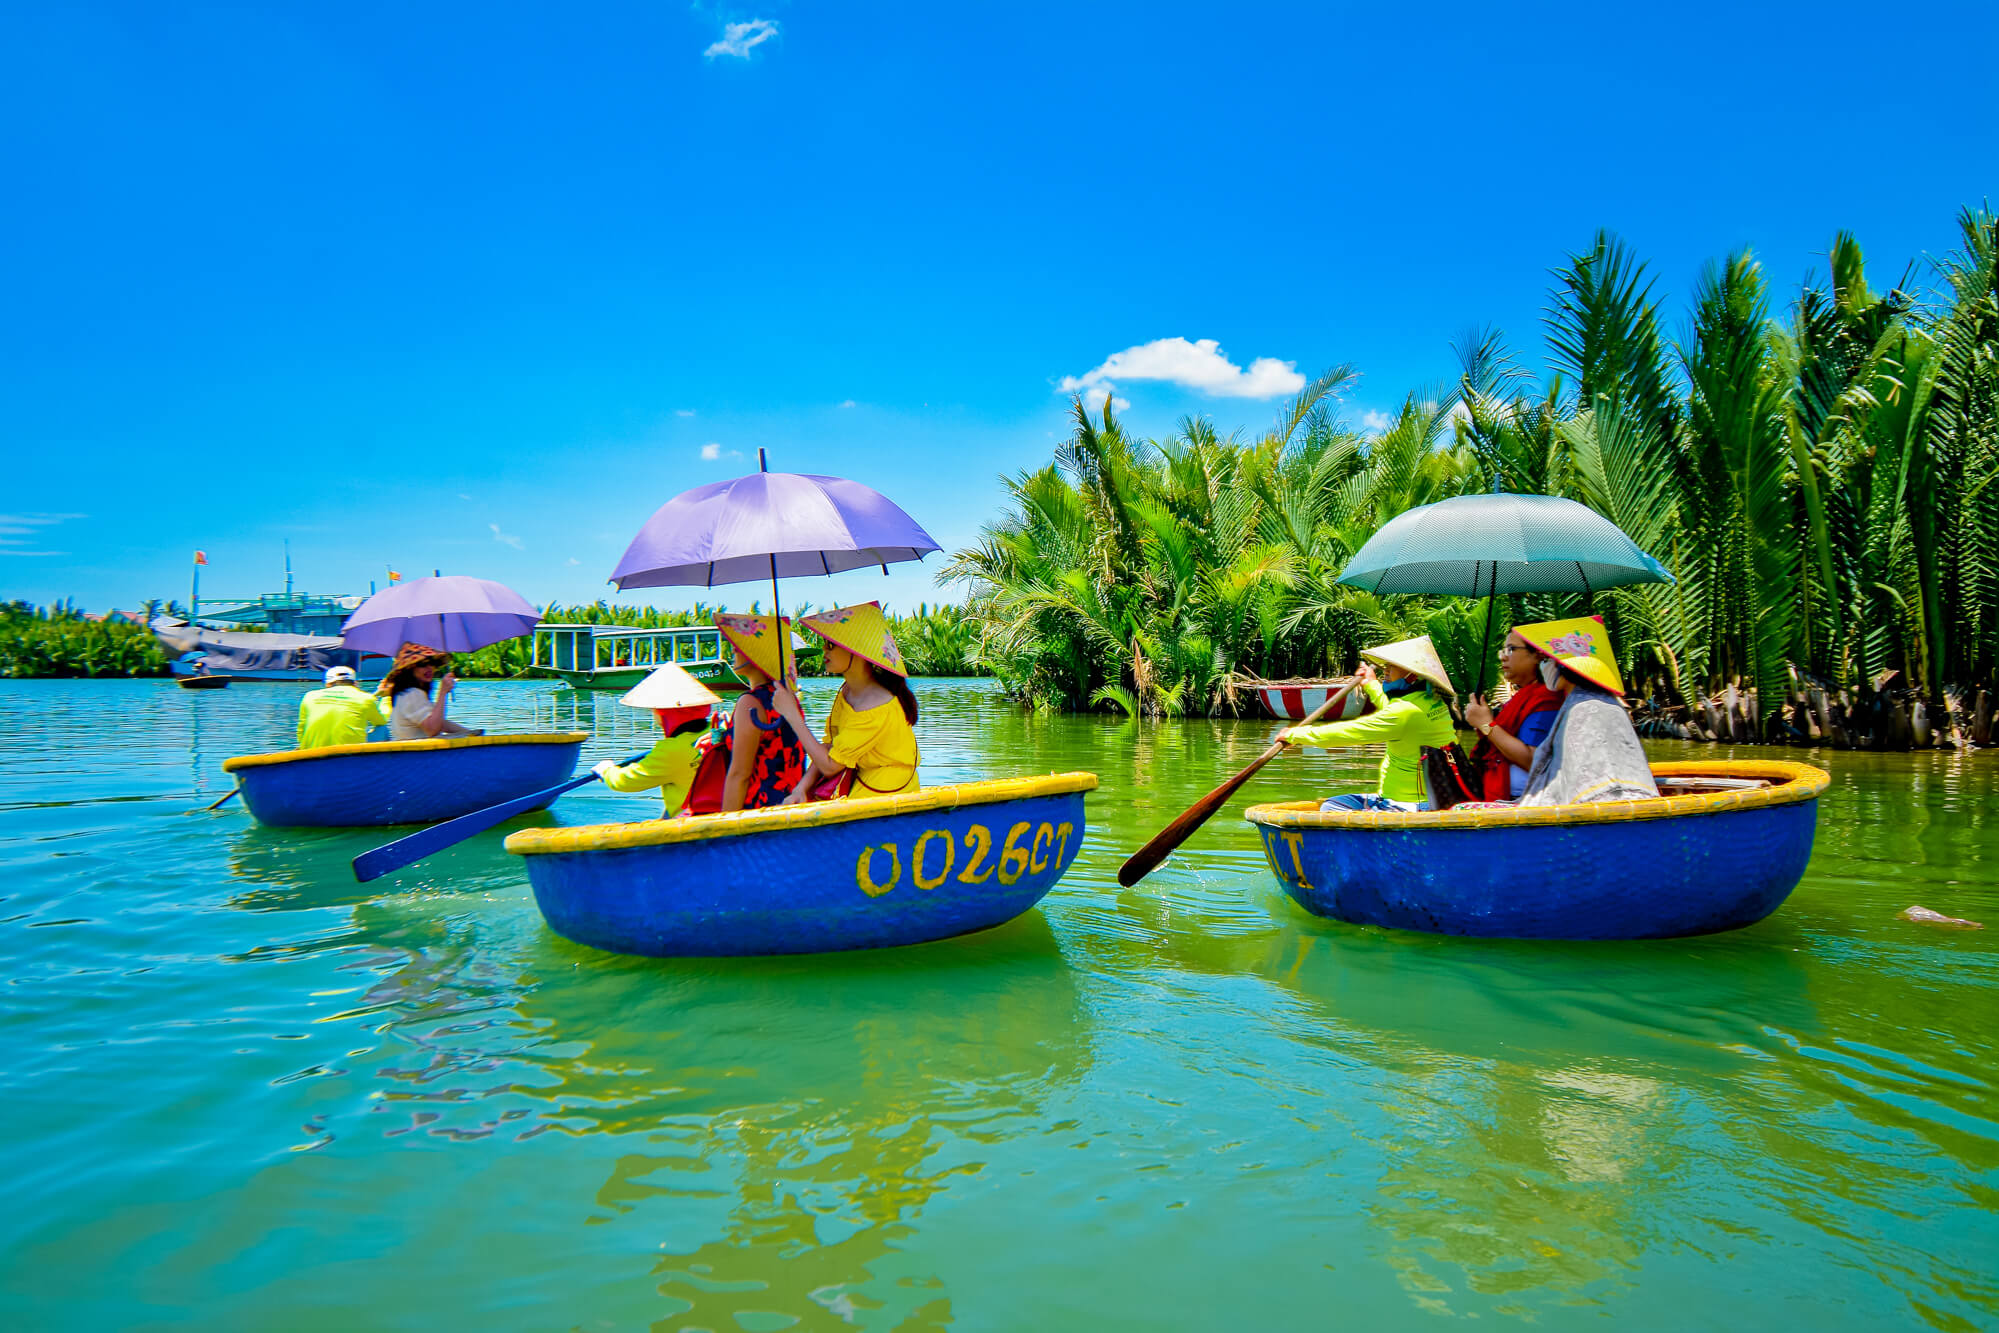 Boat trip to Coconut forest